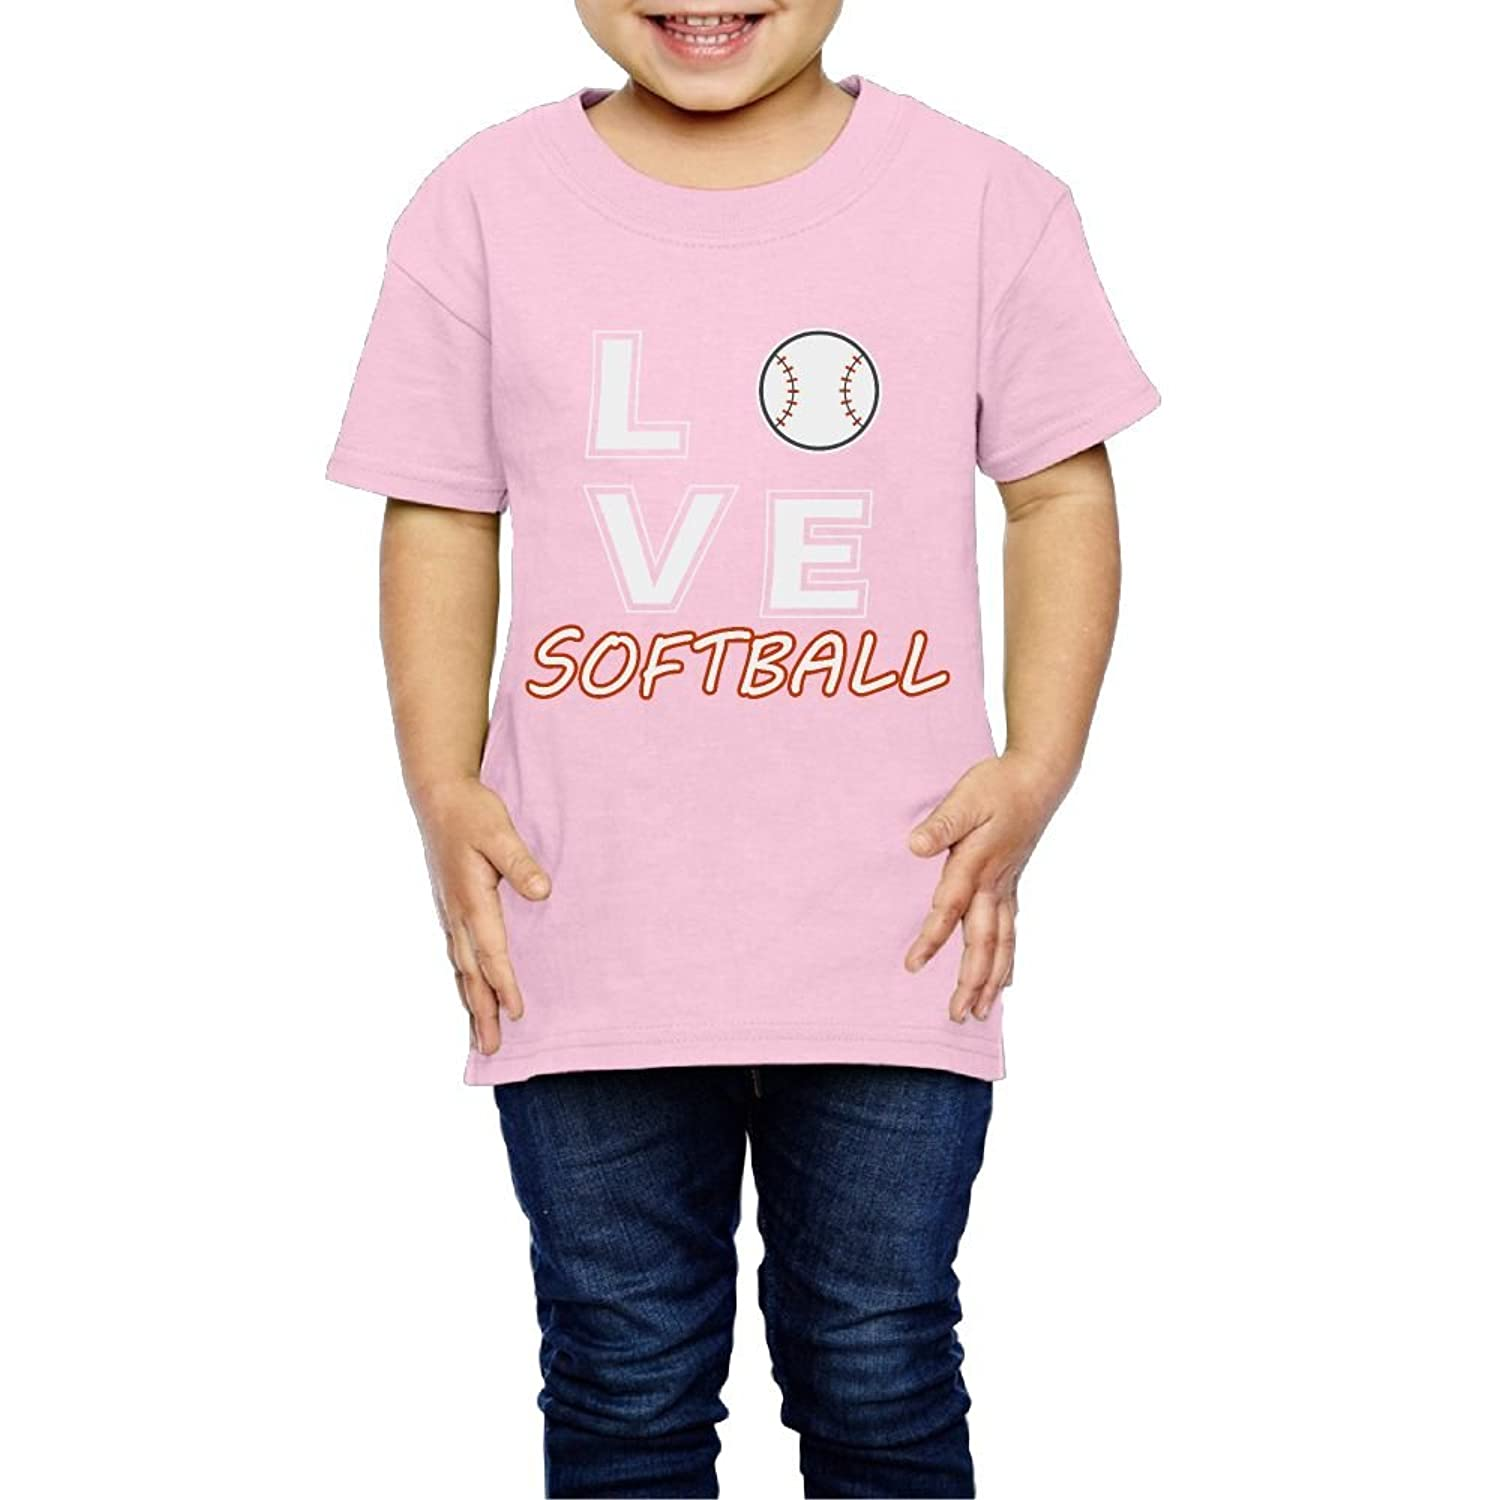 nice Tghhujffcbjj Boys Love Softball T Shirt Photoshoots Or Hiking Camping Travel Vacation T-Shirt Or Daily Wear Pink 3 Toddler get discount